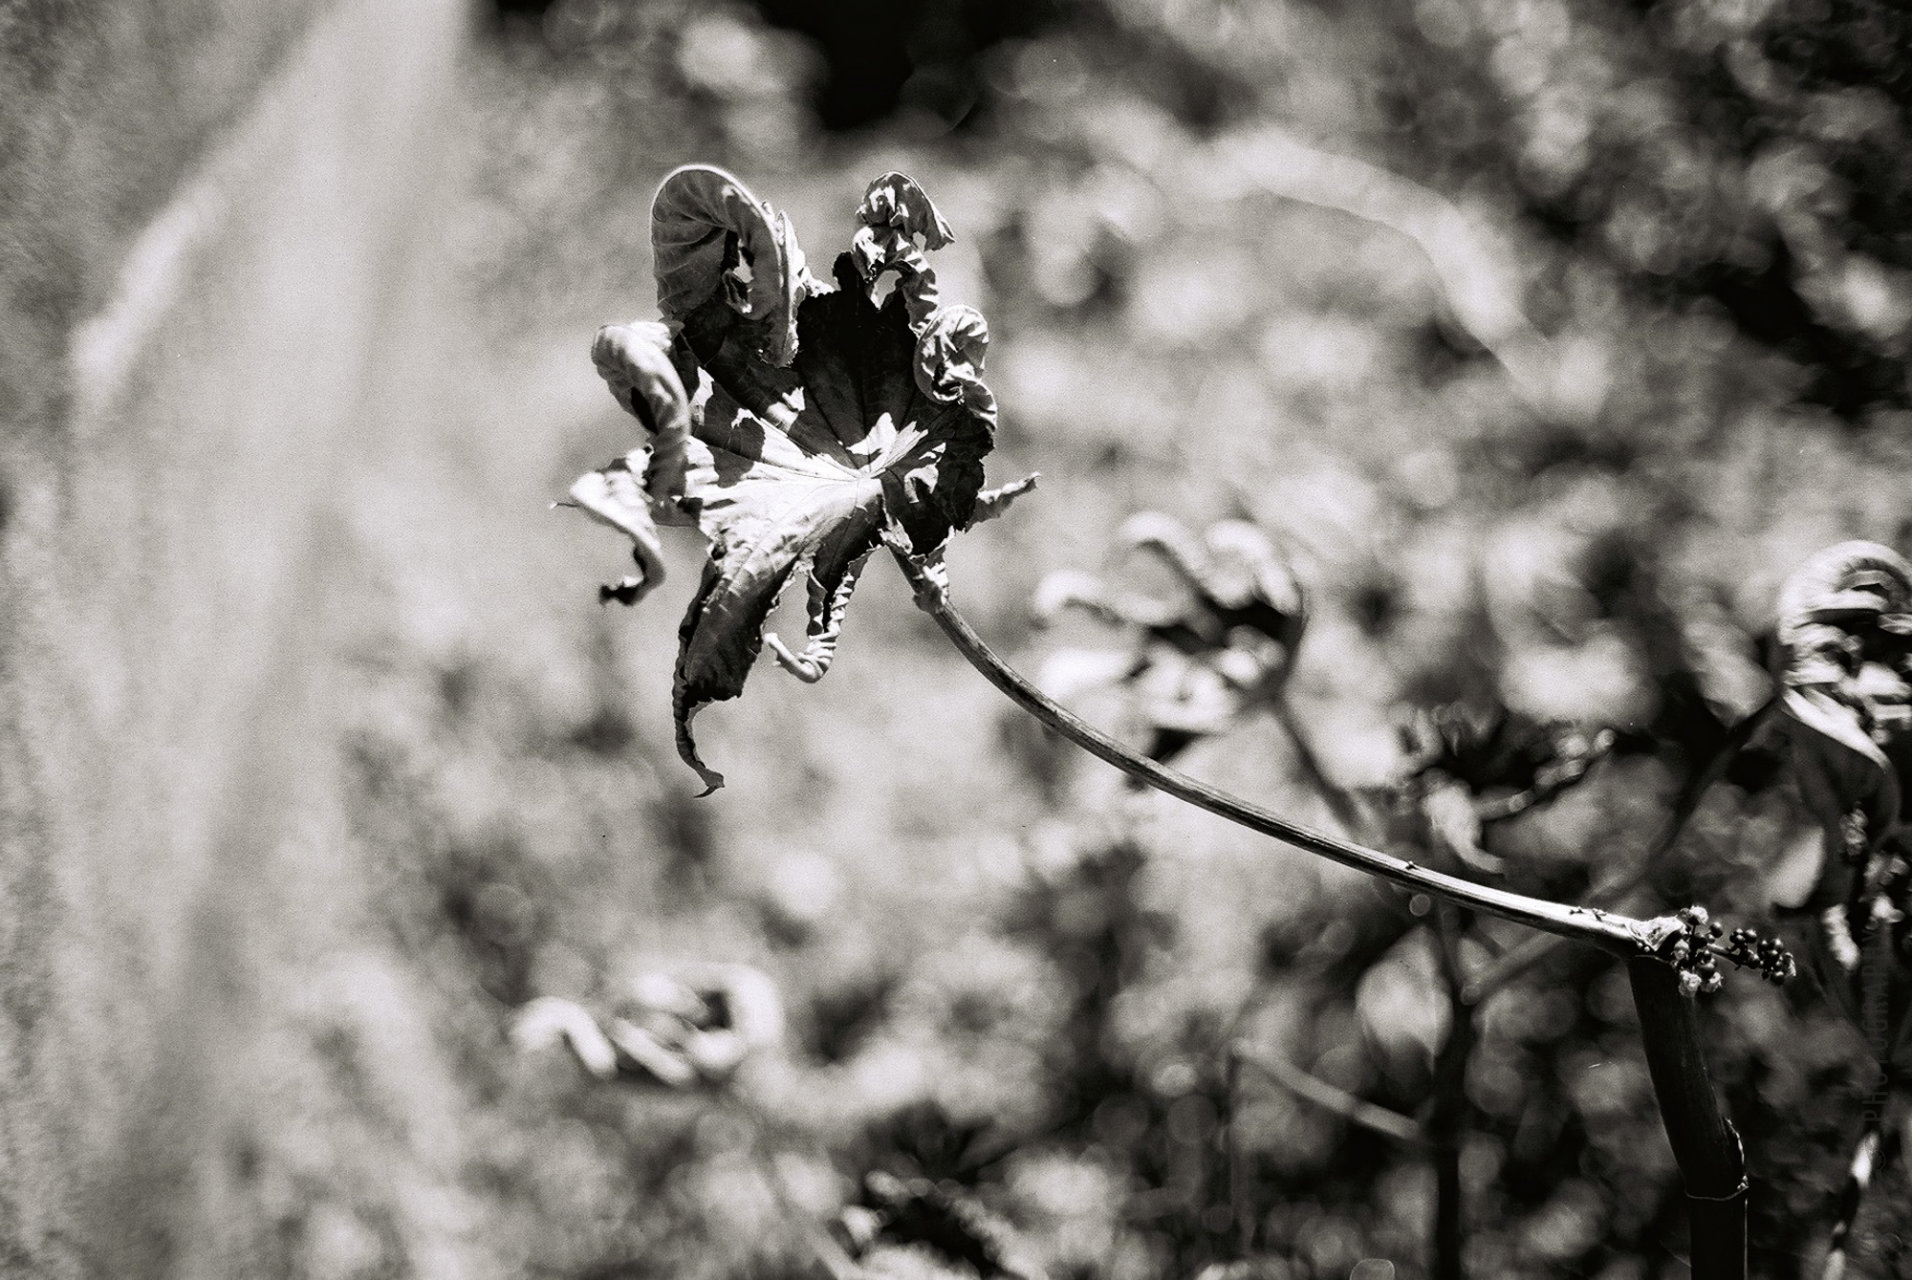 © Holger Kral • Photography - Go04_02_33 - 2004, blackwhite, flores, gomera, journey, landscape, nature - photo #1